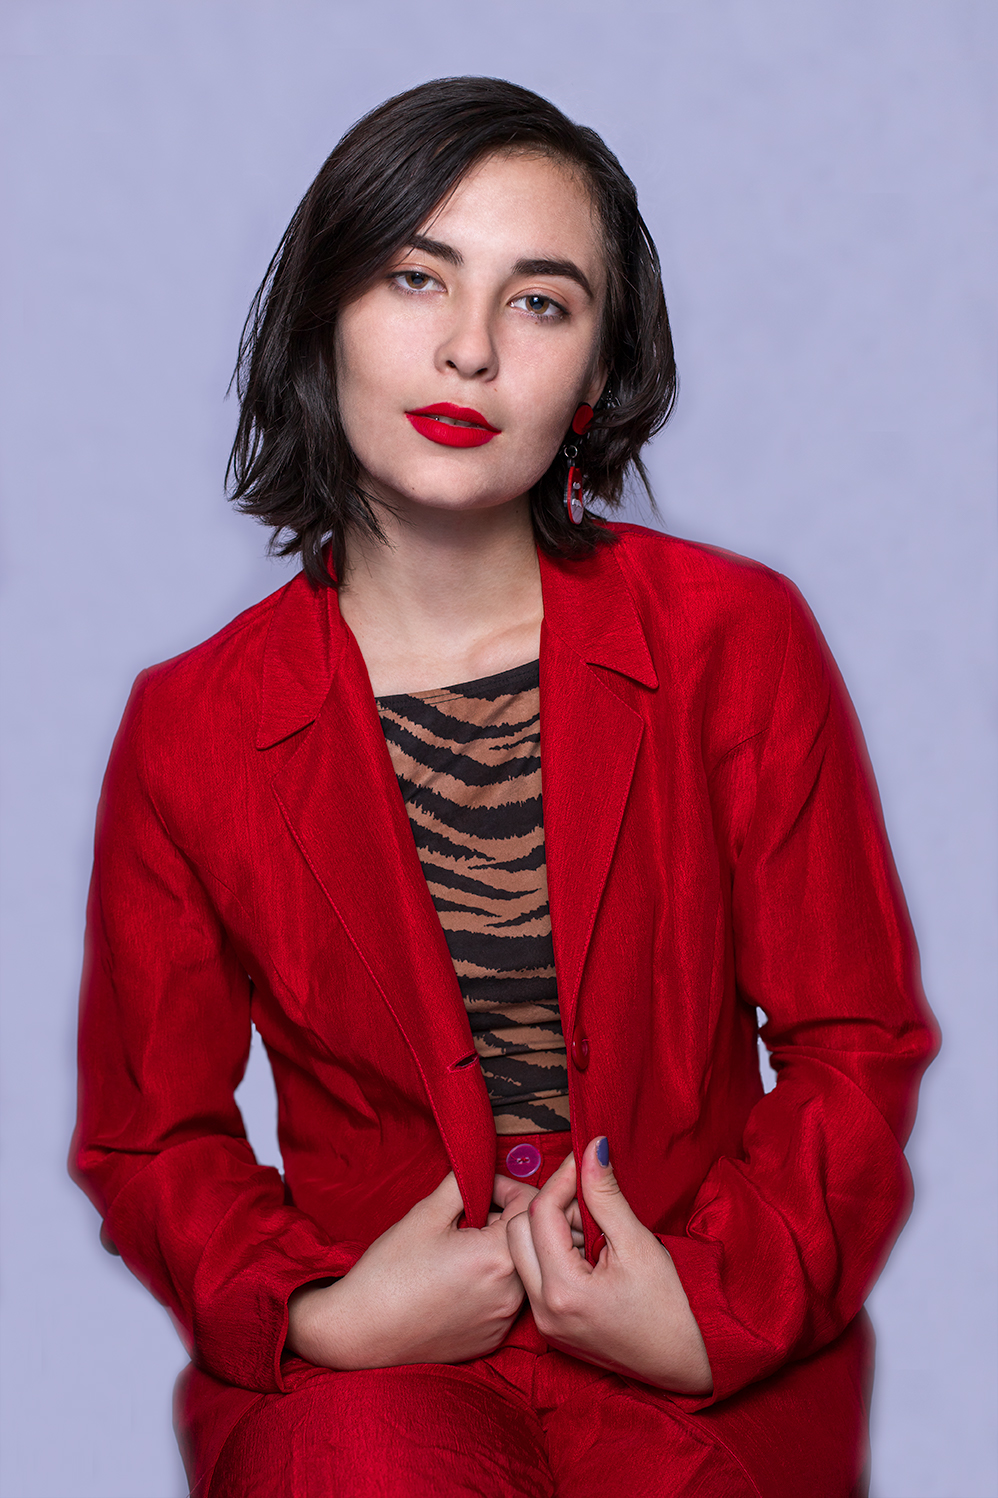 Woman wearing a red suit with red lipstick posed sitting down in front of a white screen.